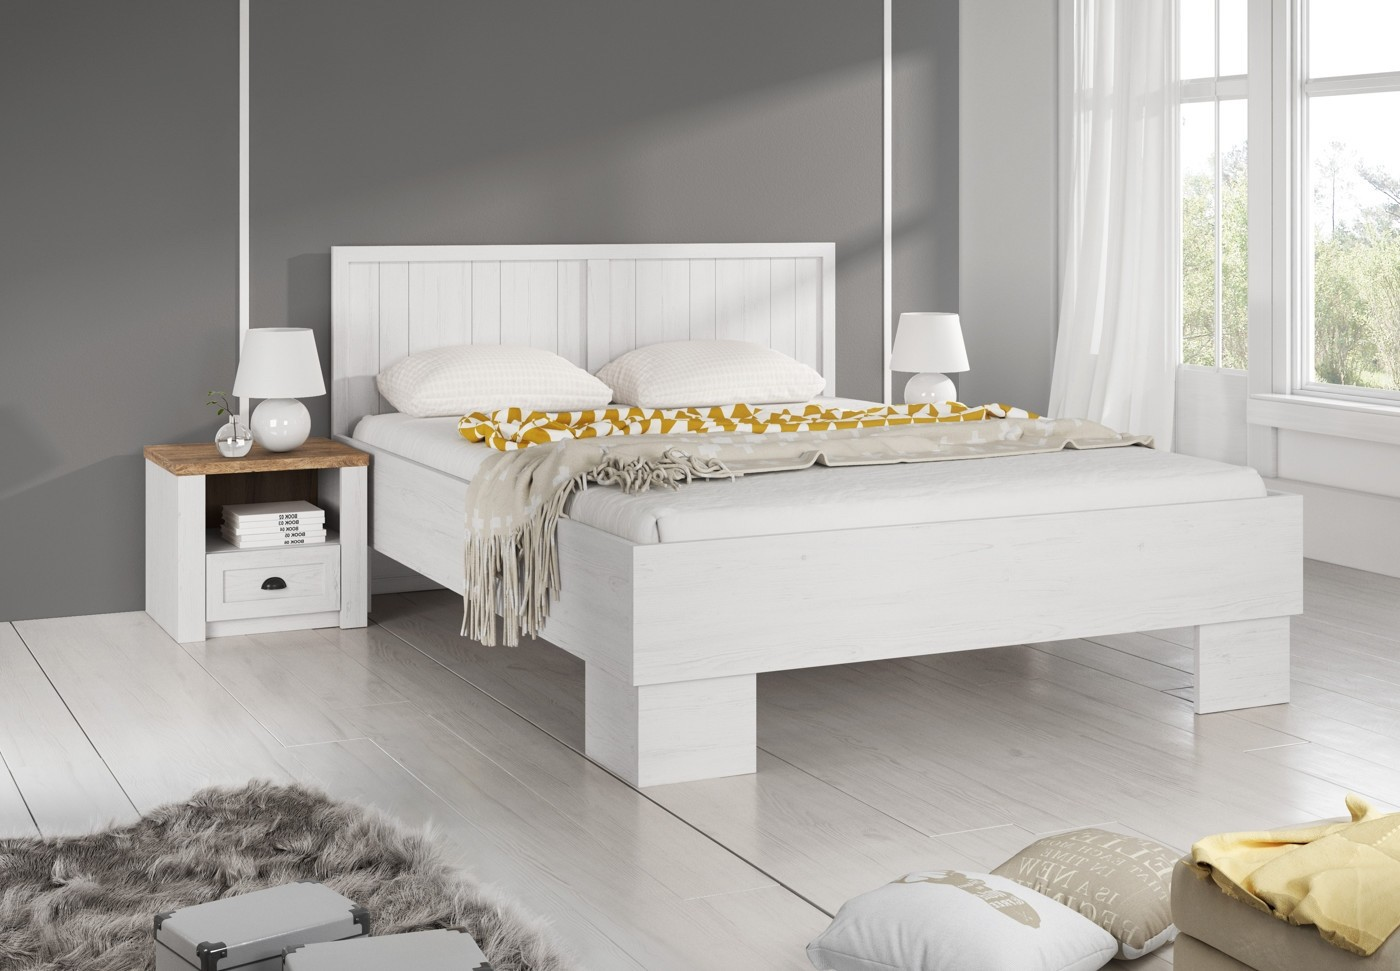 tweepersoonsbed parello wit 160 x 200 cm meubella. Black Bedroom Furniture Sets. Home Design Ideas